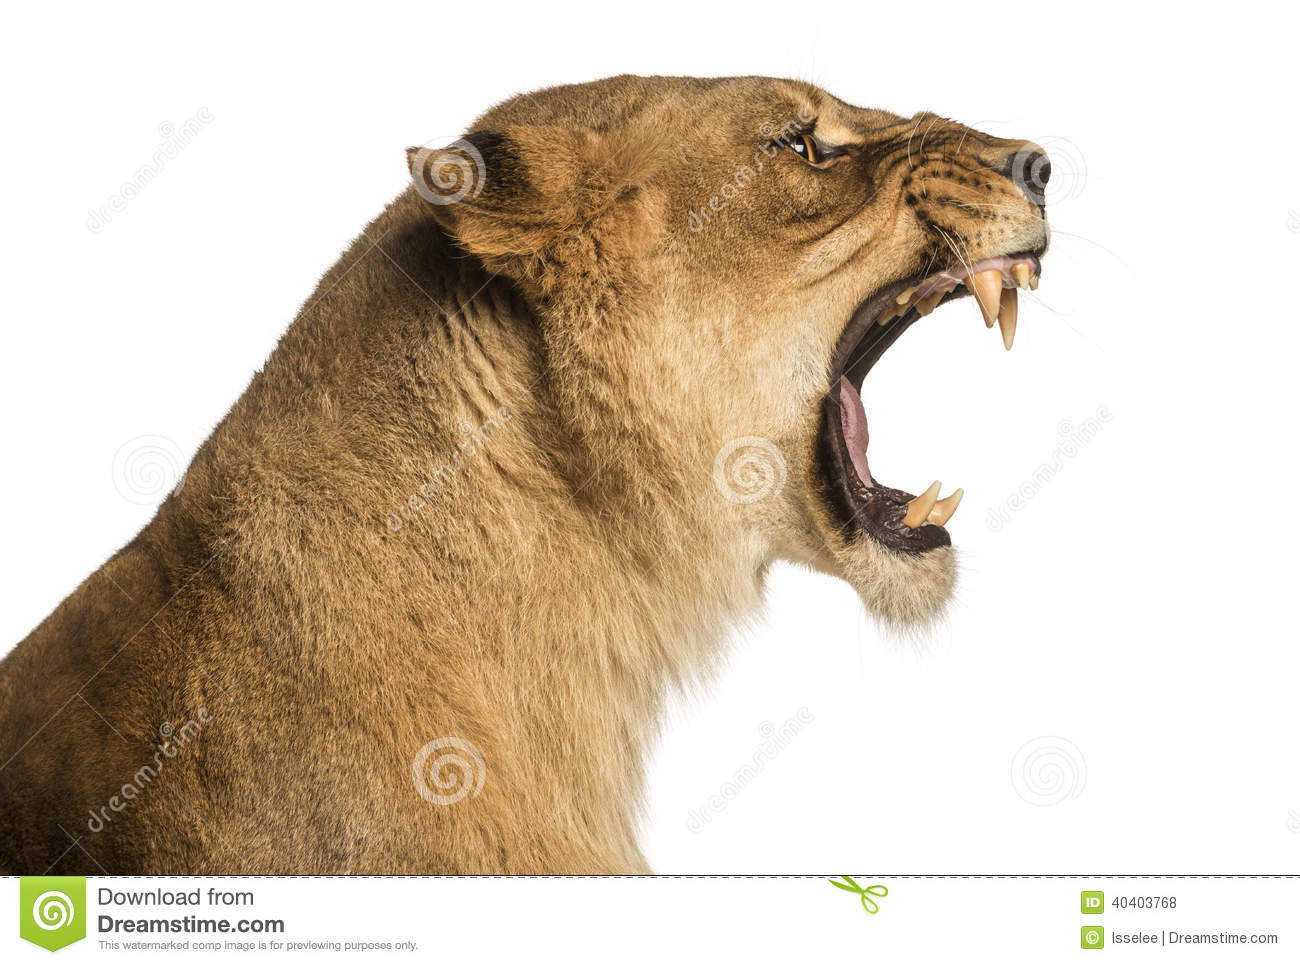 Close-up of a Lioness roaring profile, Panthera leo